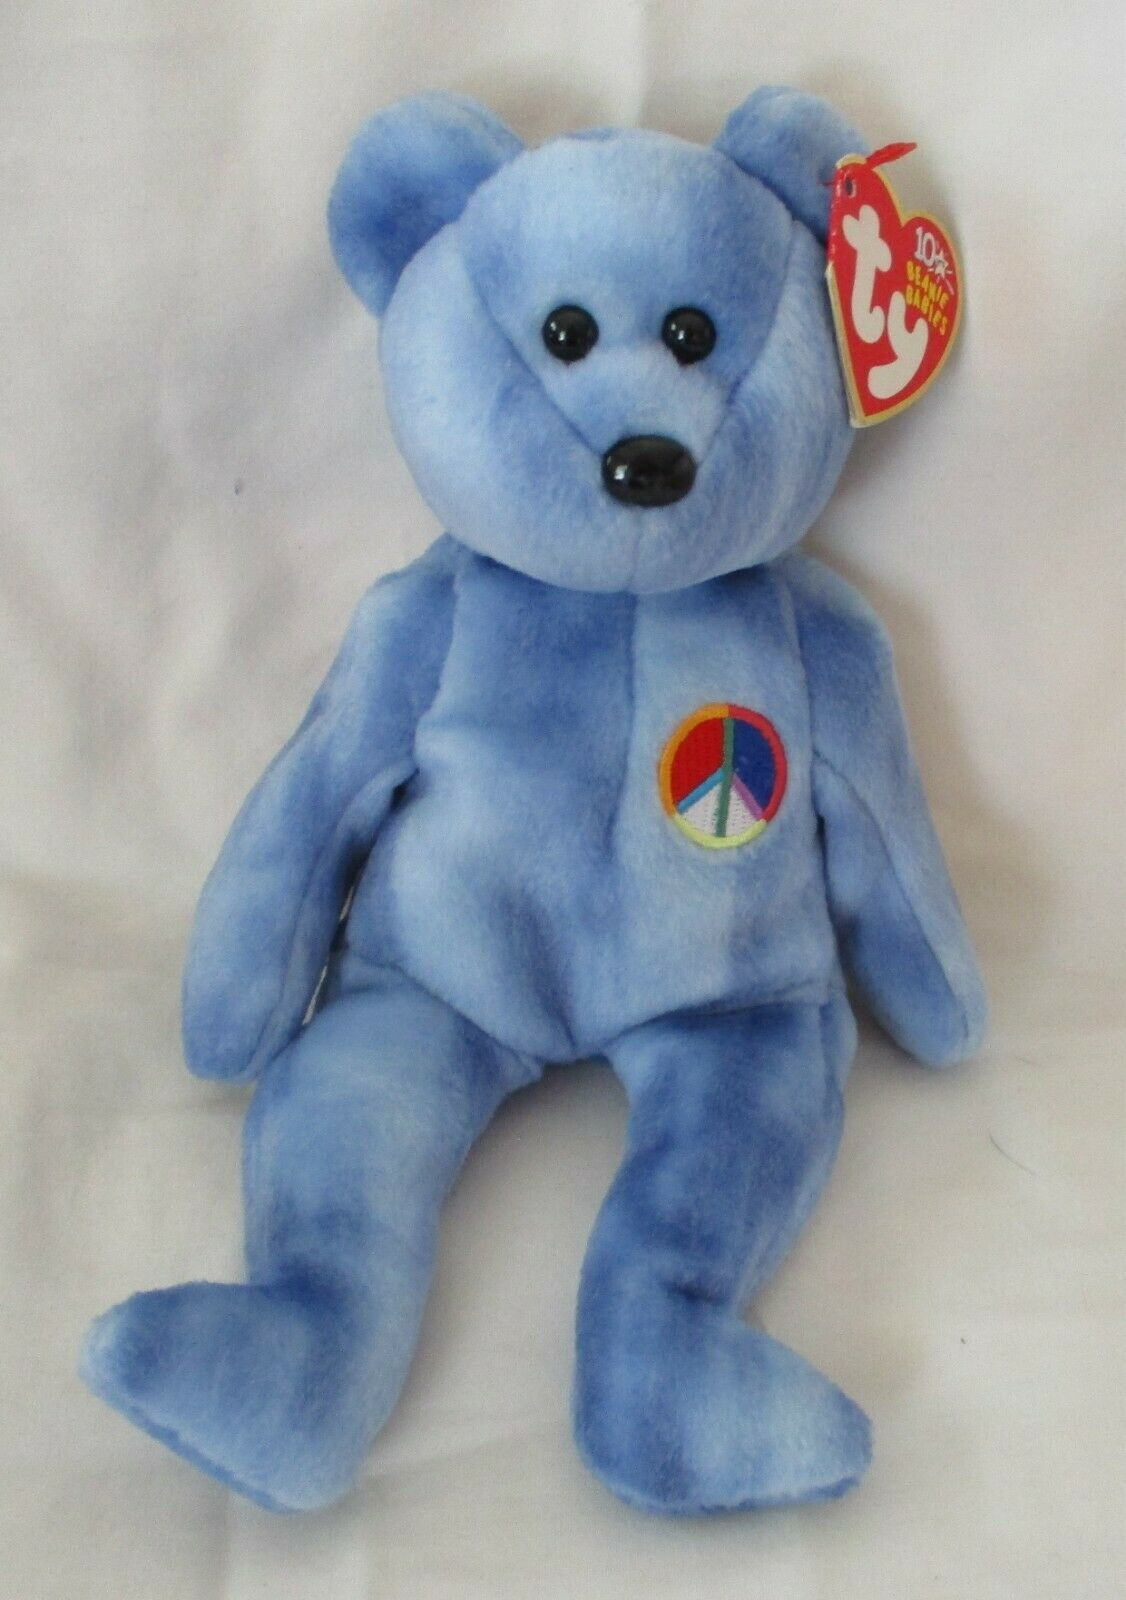 Ty Beanie Baby Peace Bear 11th Generation Hang Tag 2003 Blue Version